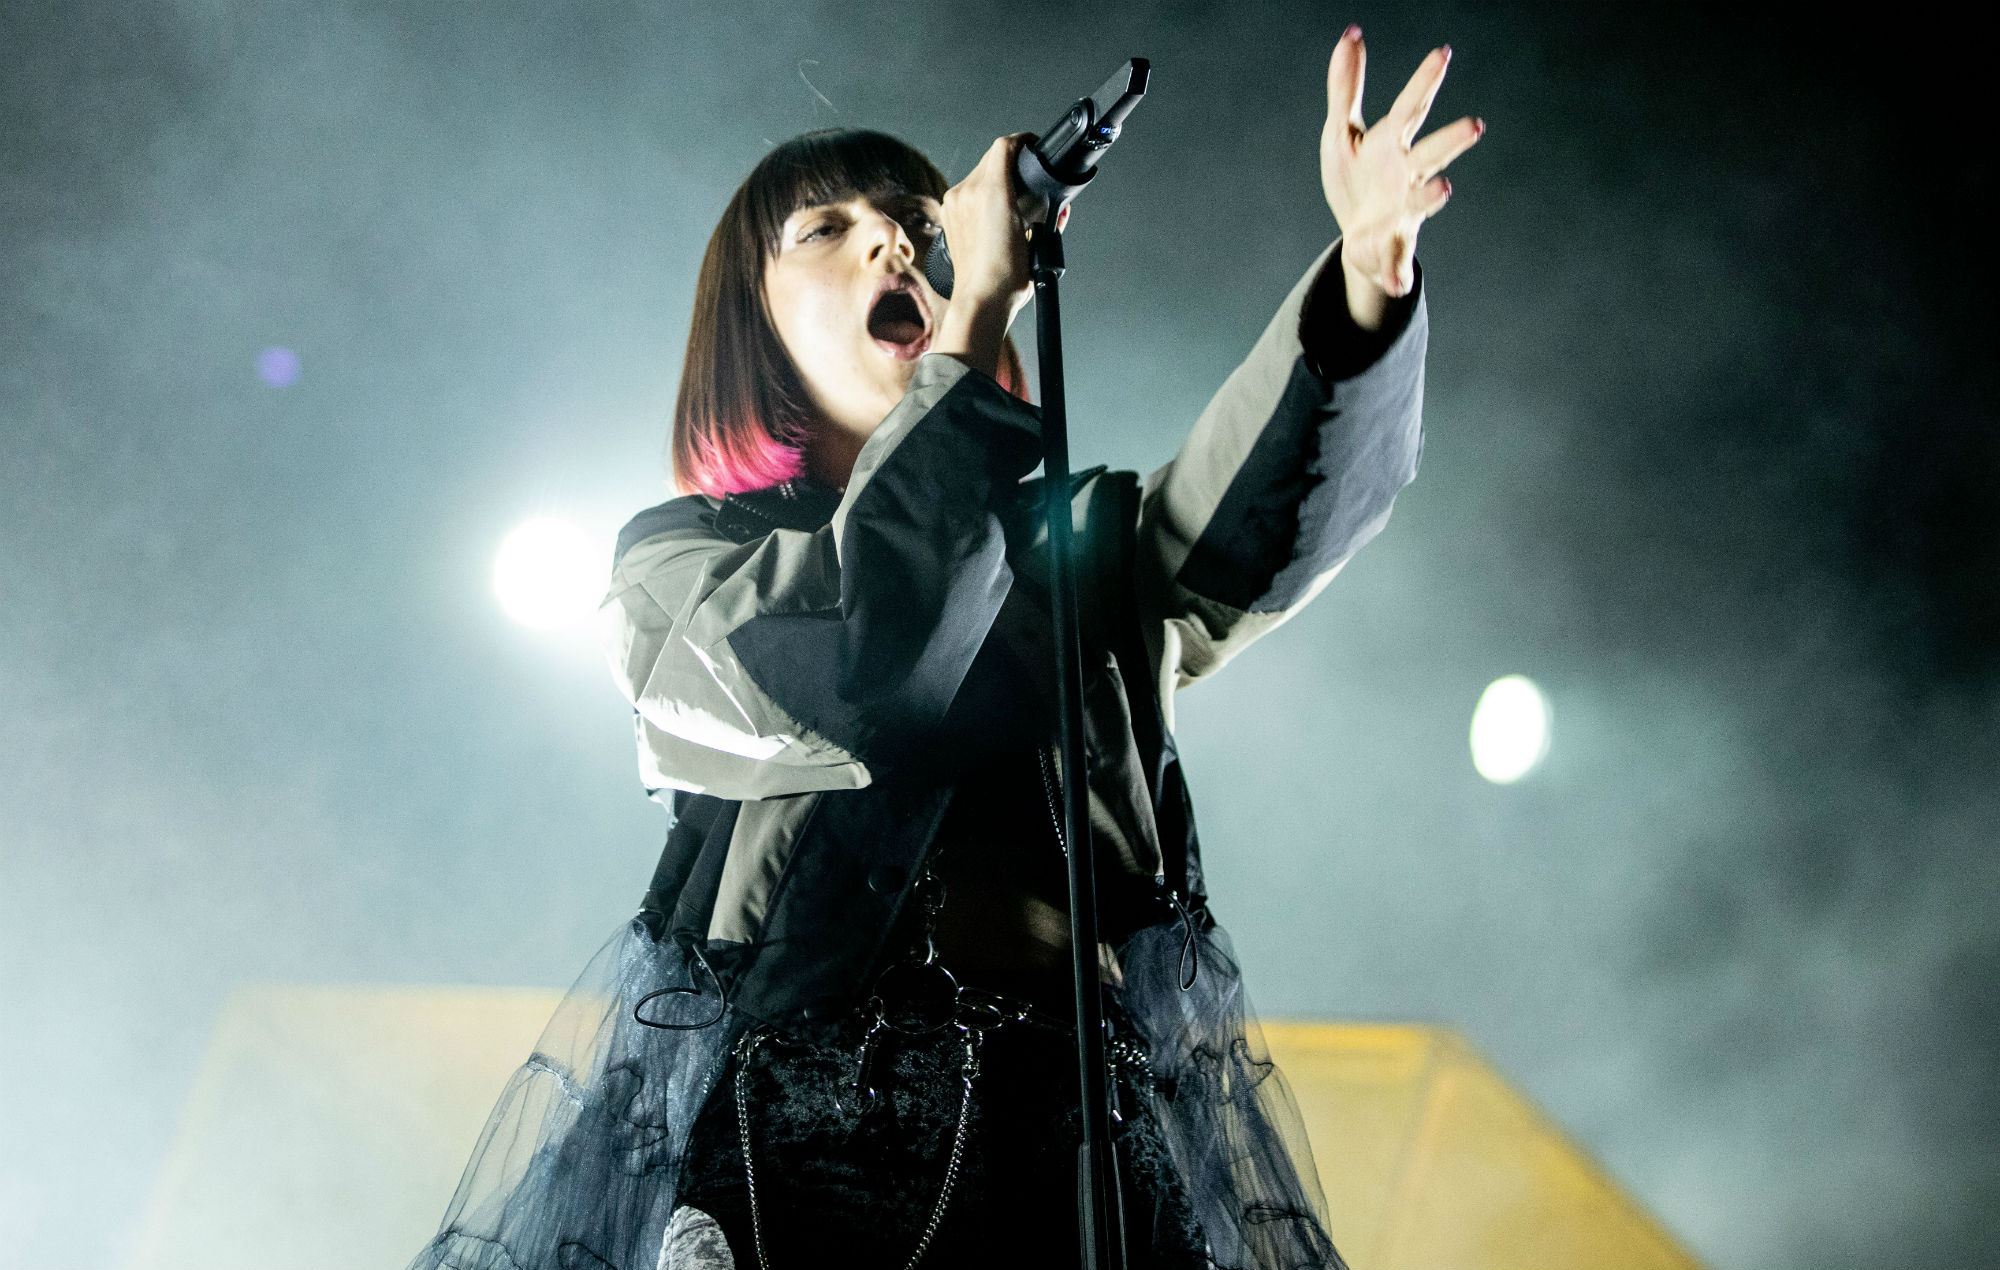 Charli XCX performs at Primavera Sound